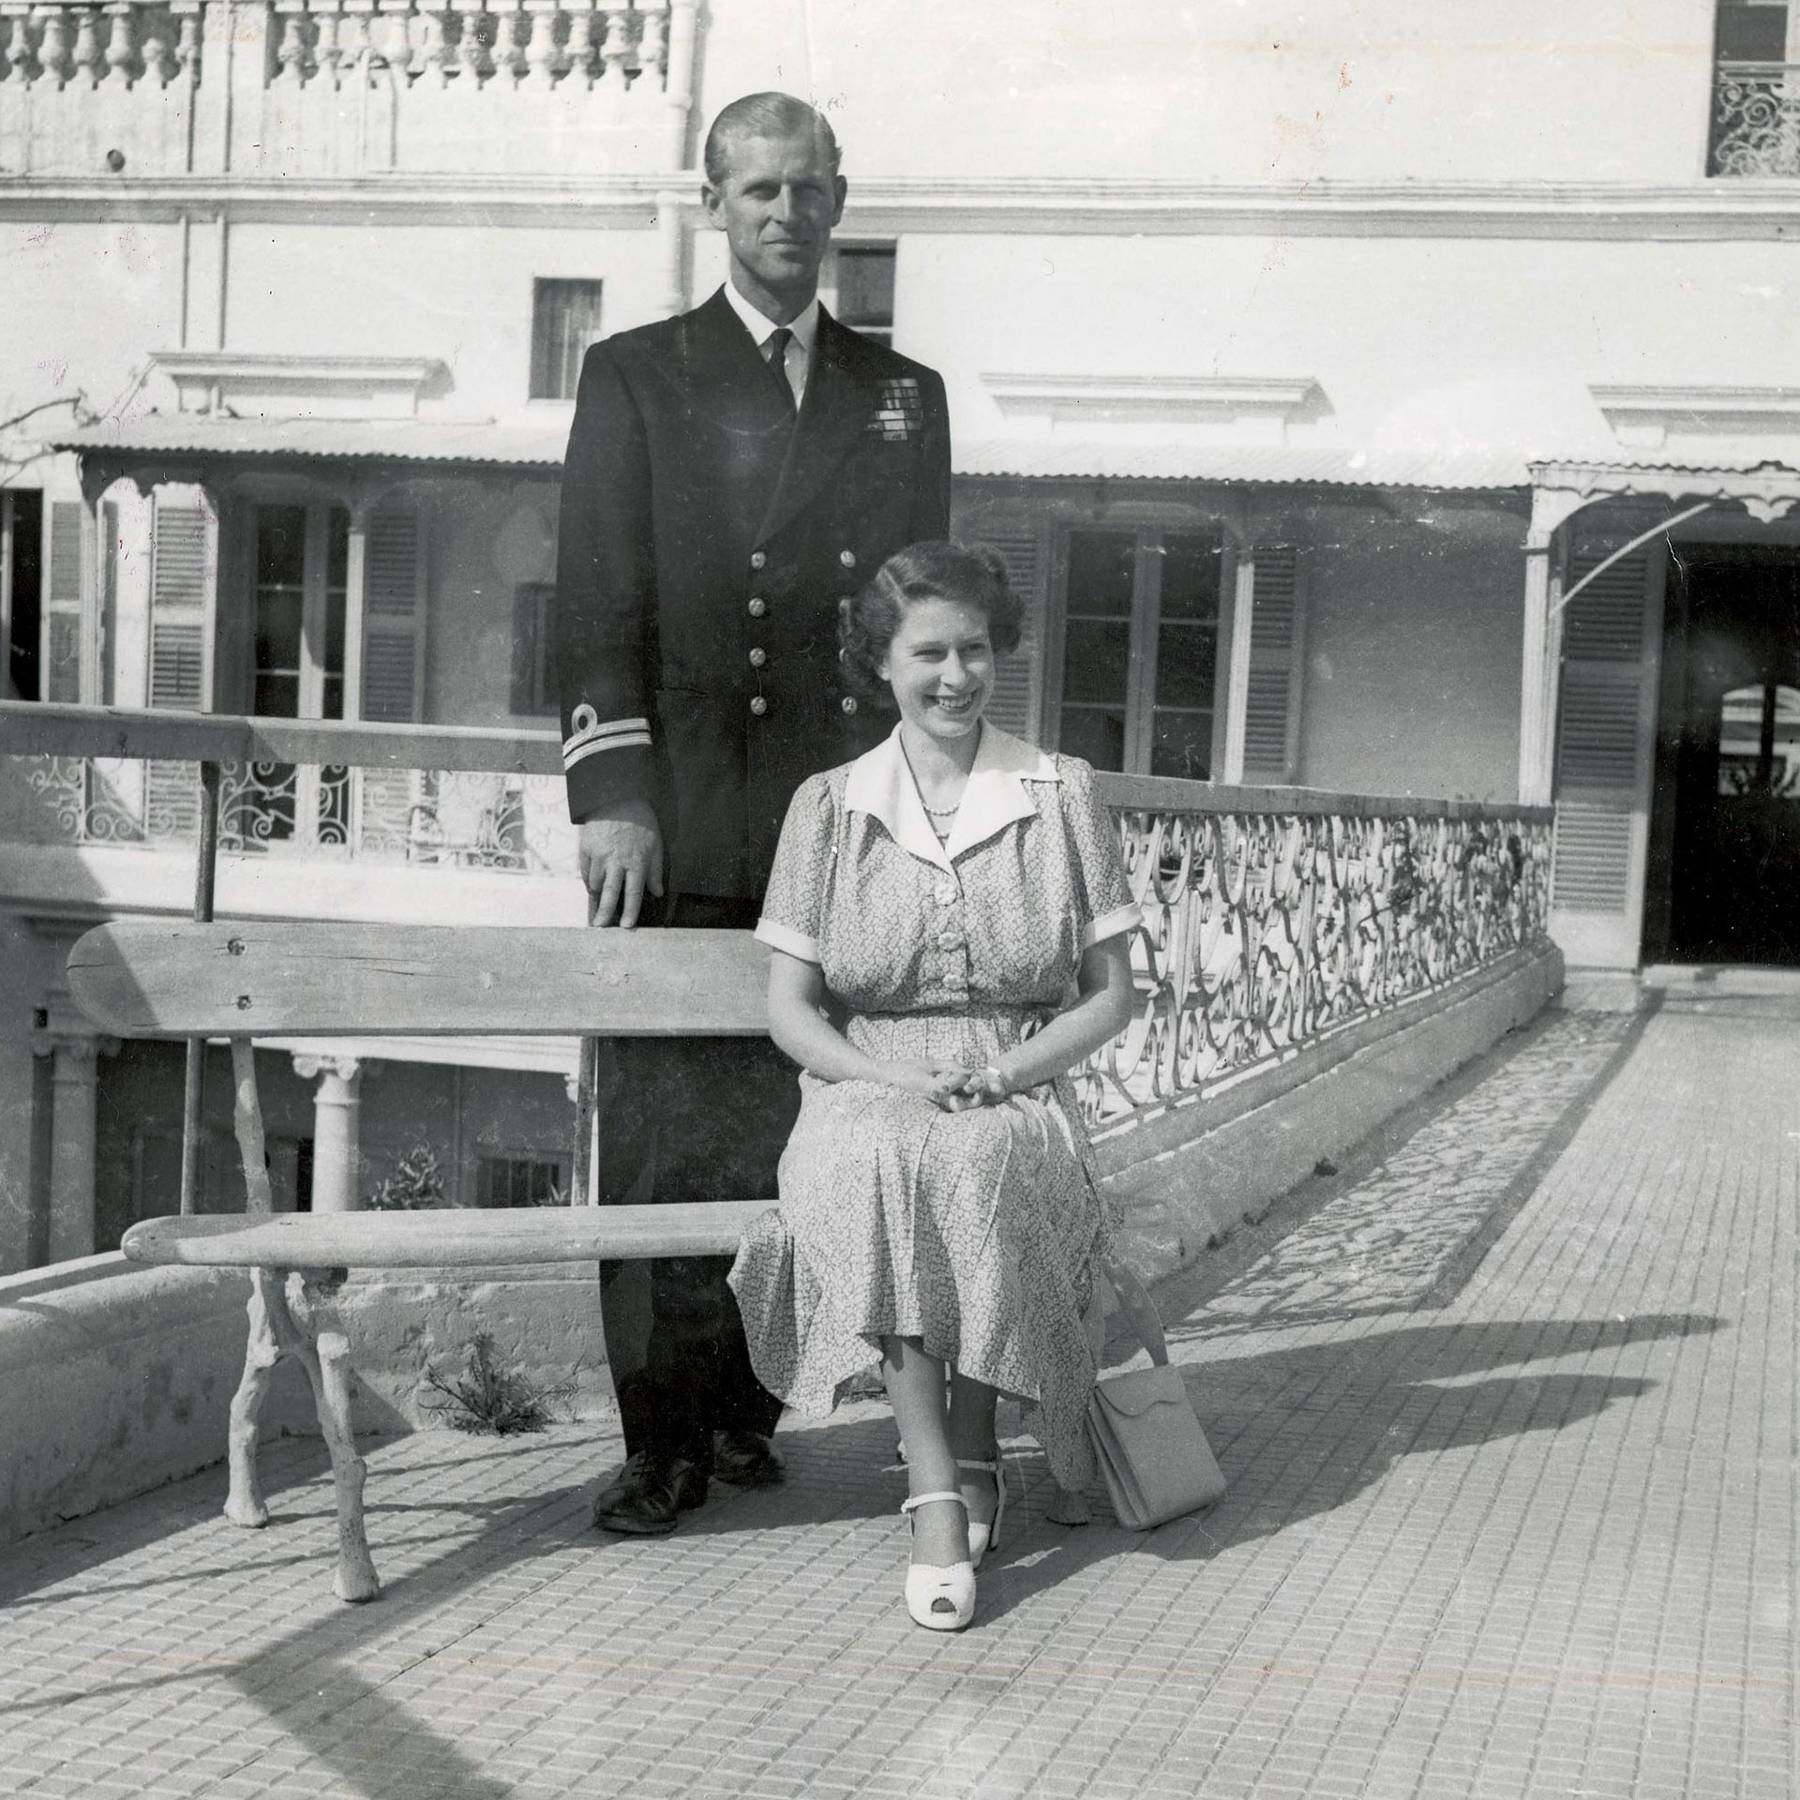 The Queen and Prince Philip's former home in Malta is set to become a  museum | Tatler